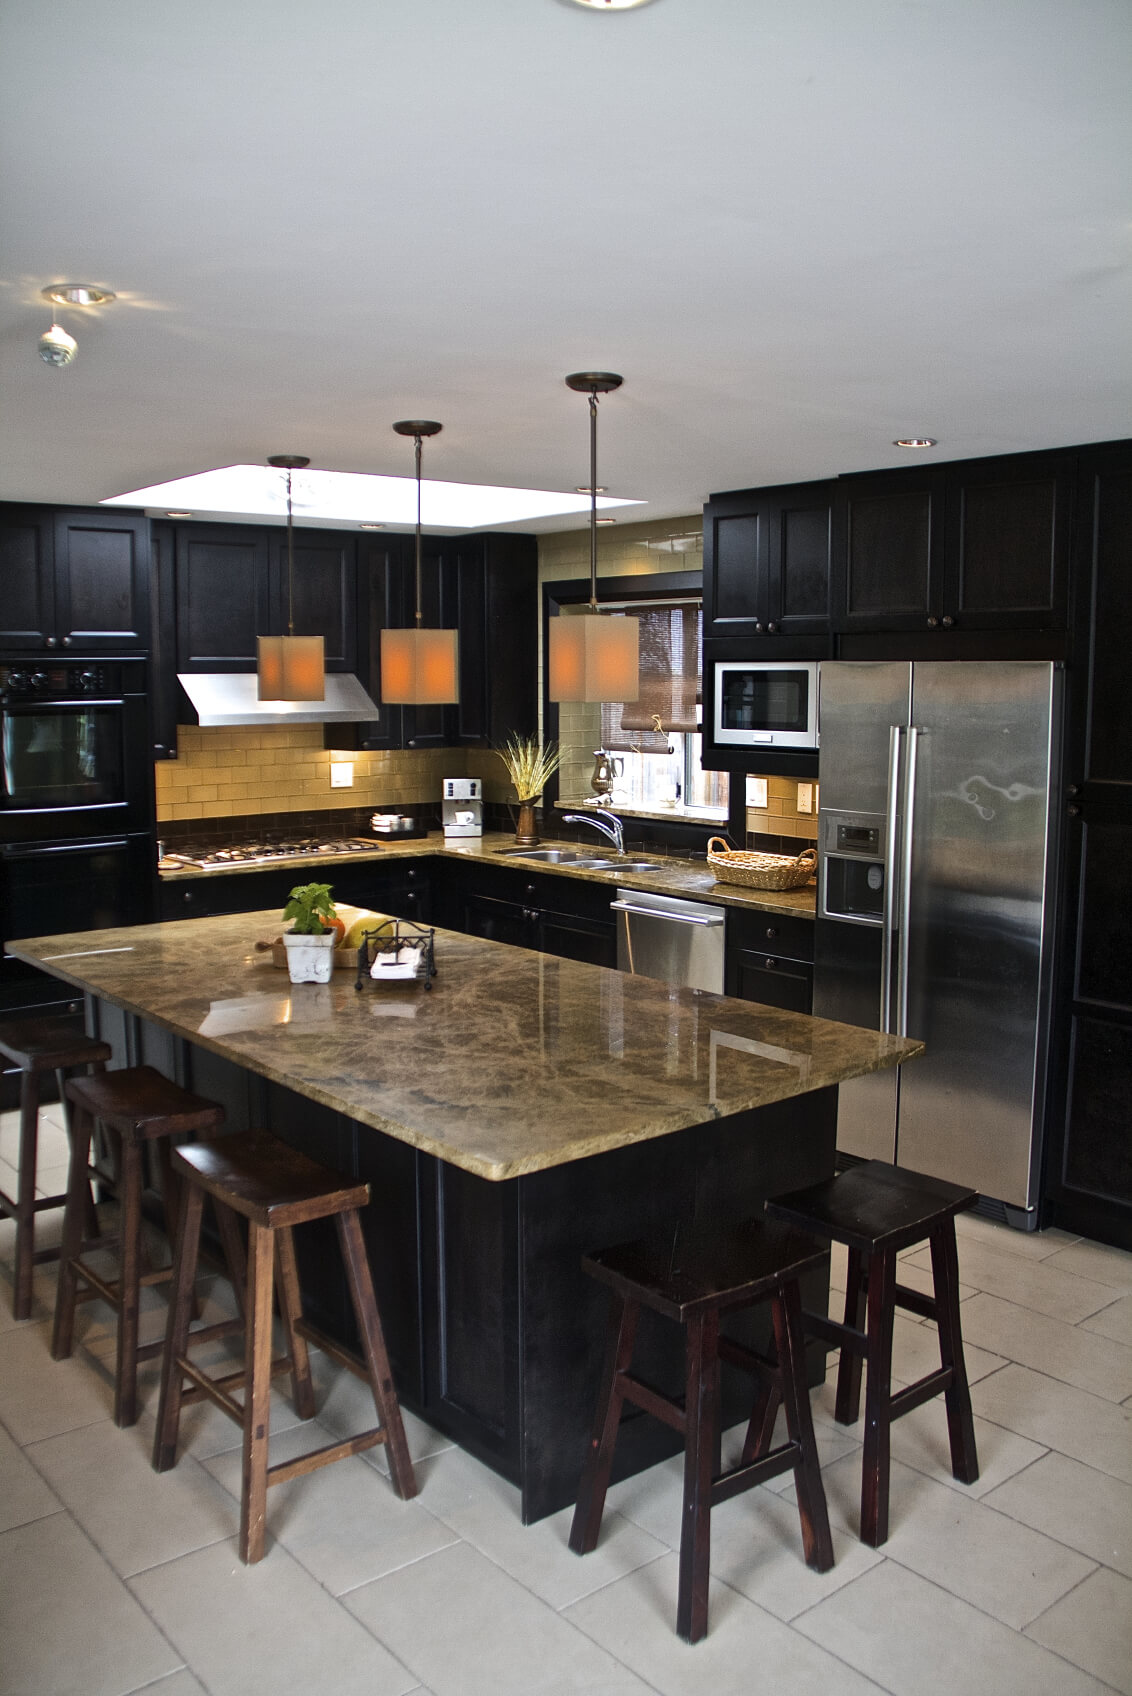 Contemporary Black L Shaped Kitchen With Long Island Set On White Tile Floor